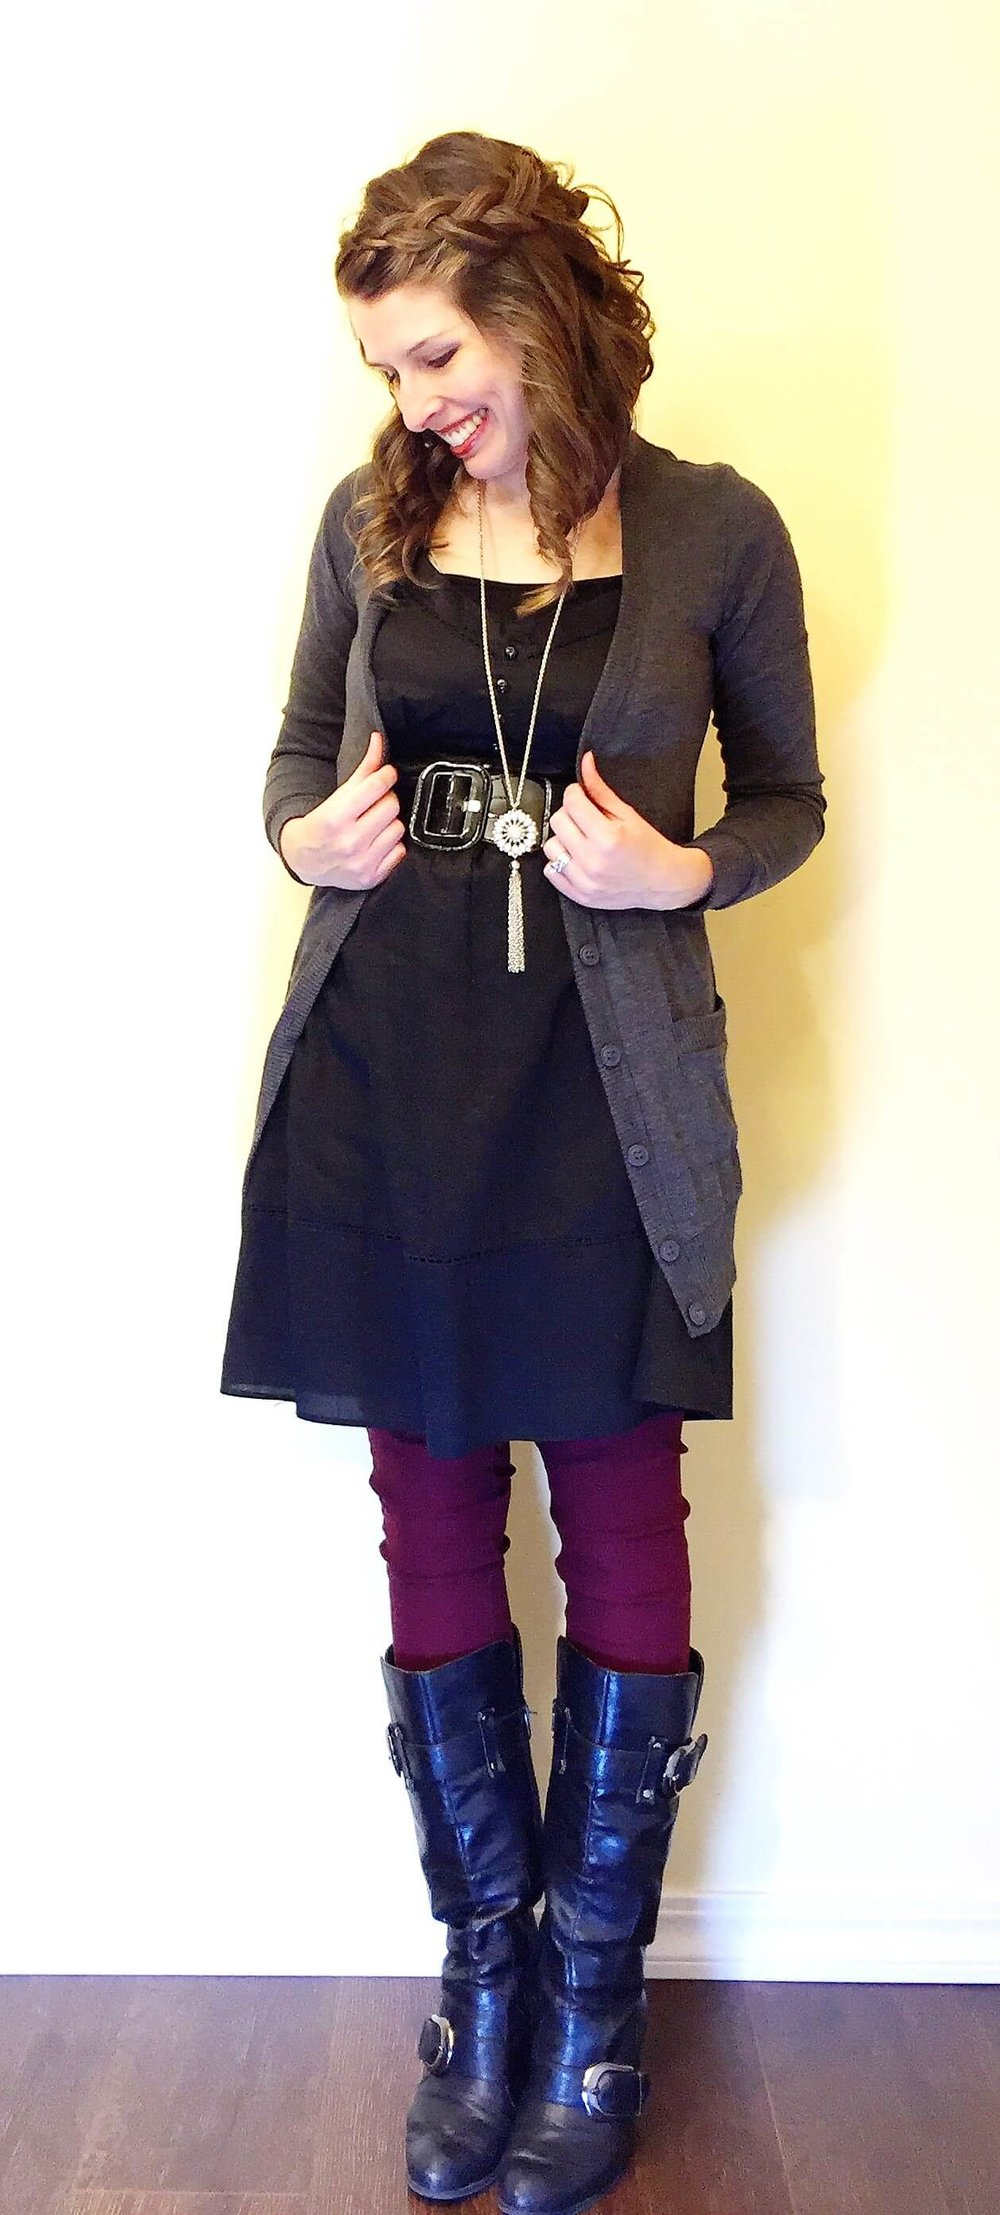 Dress + Belt + Cardigan + Boots